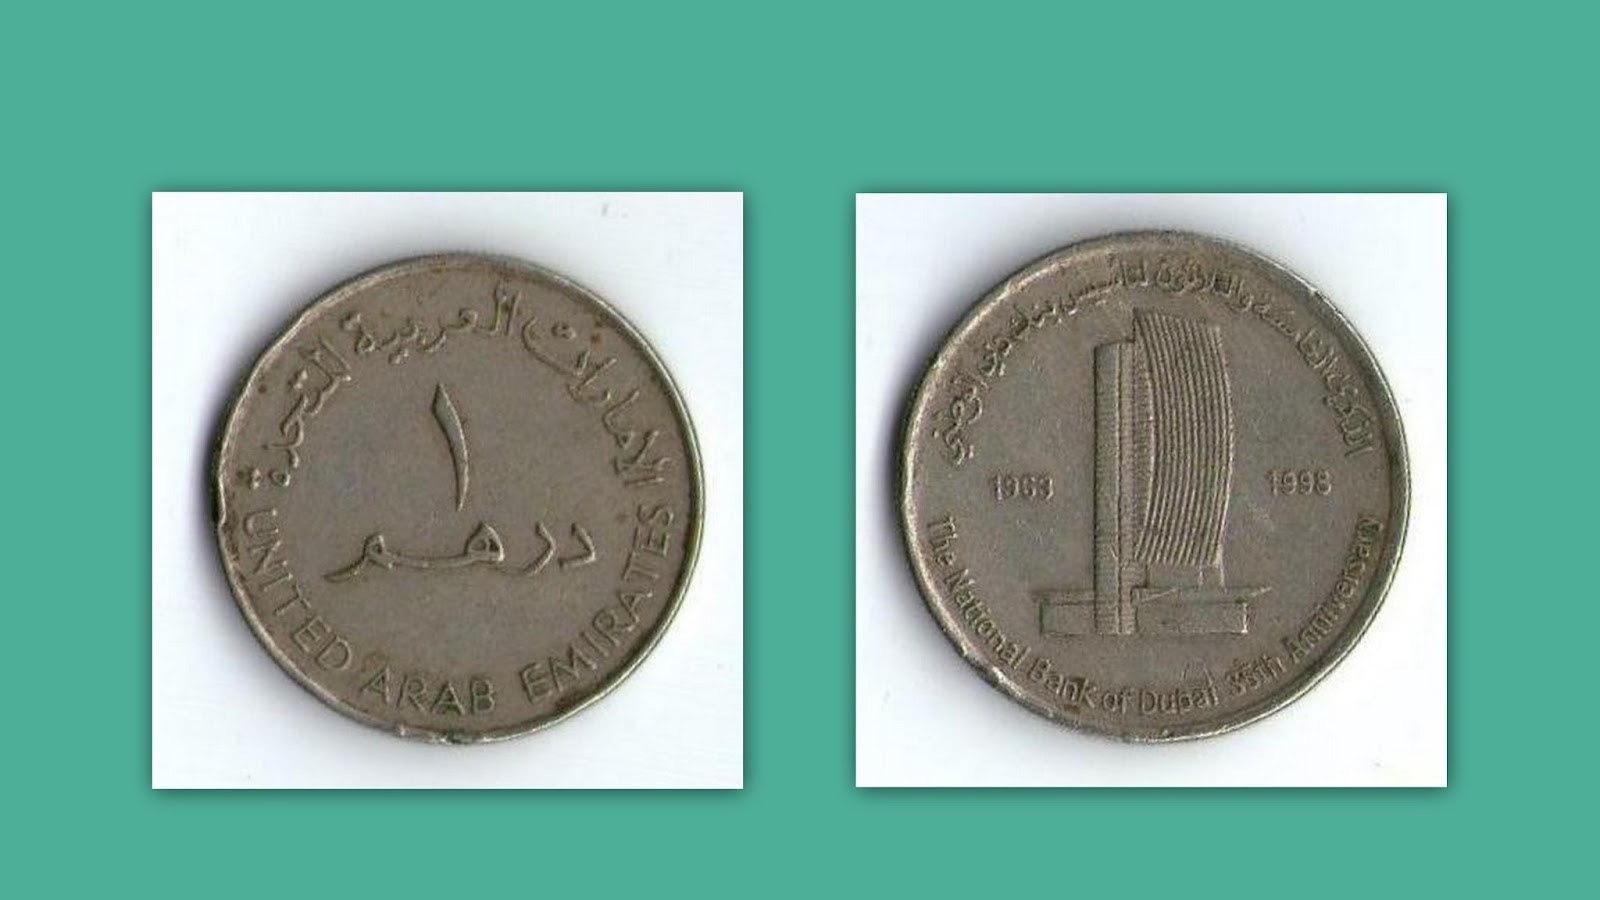 Philaton september 2013 the dirham is the currency of the united arab emirates e iso 4217 international currency code for the united arab emirates dirham is aed biocorpaavc